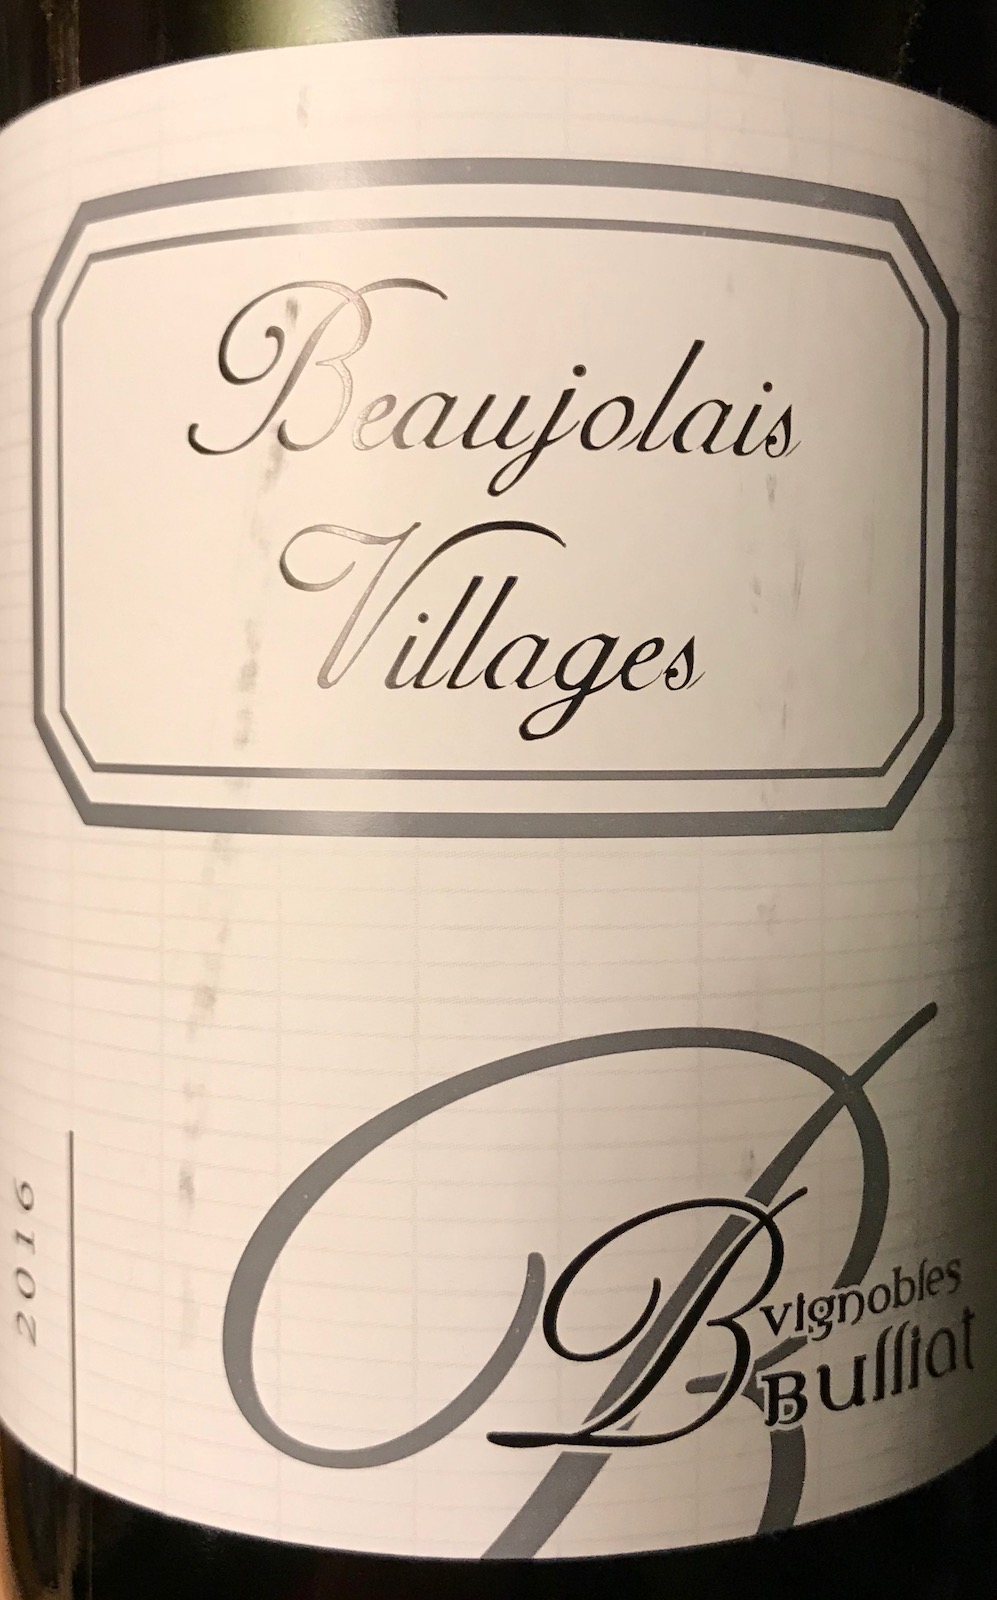 Bulliat Beaujolais